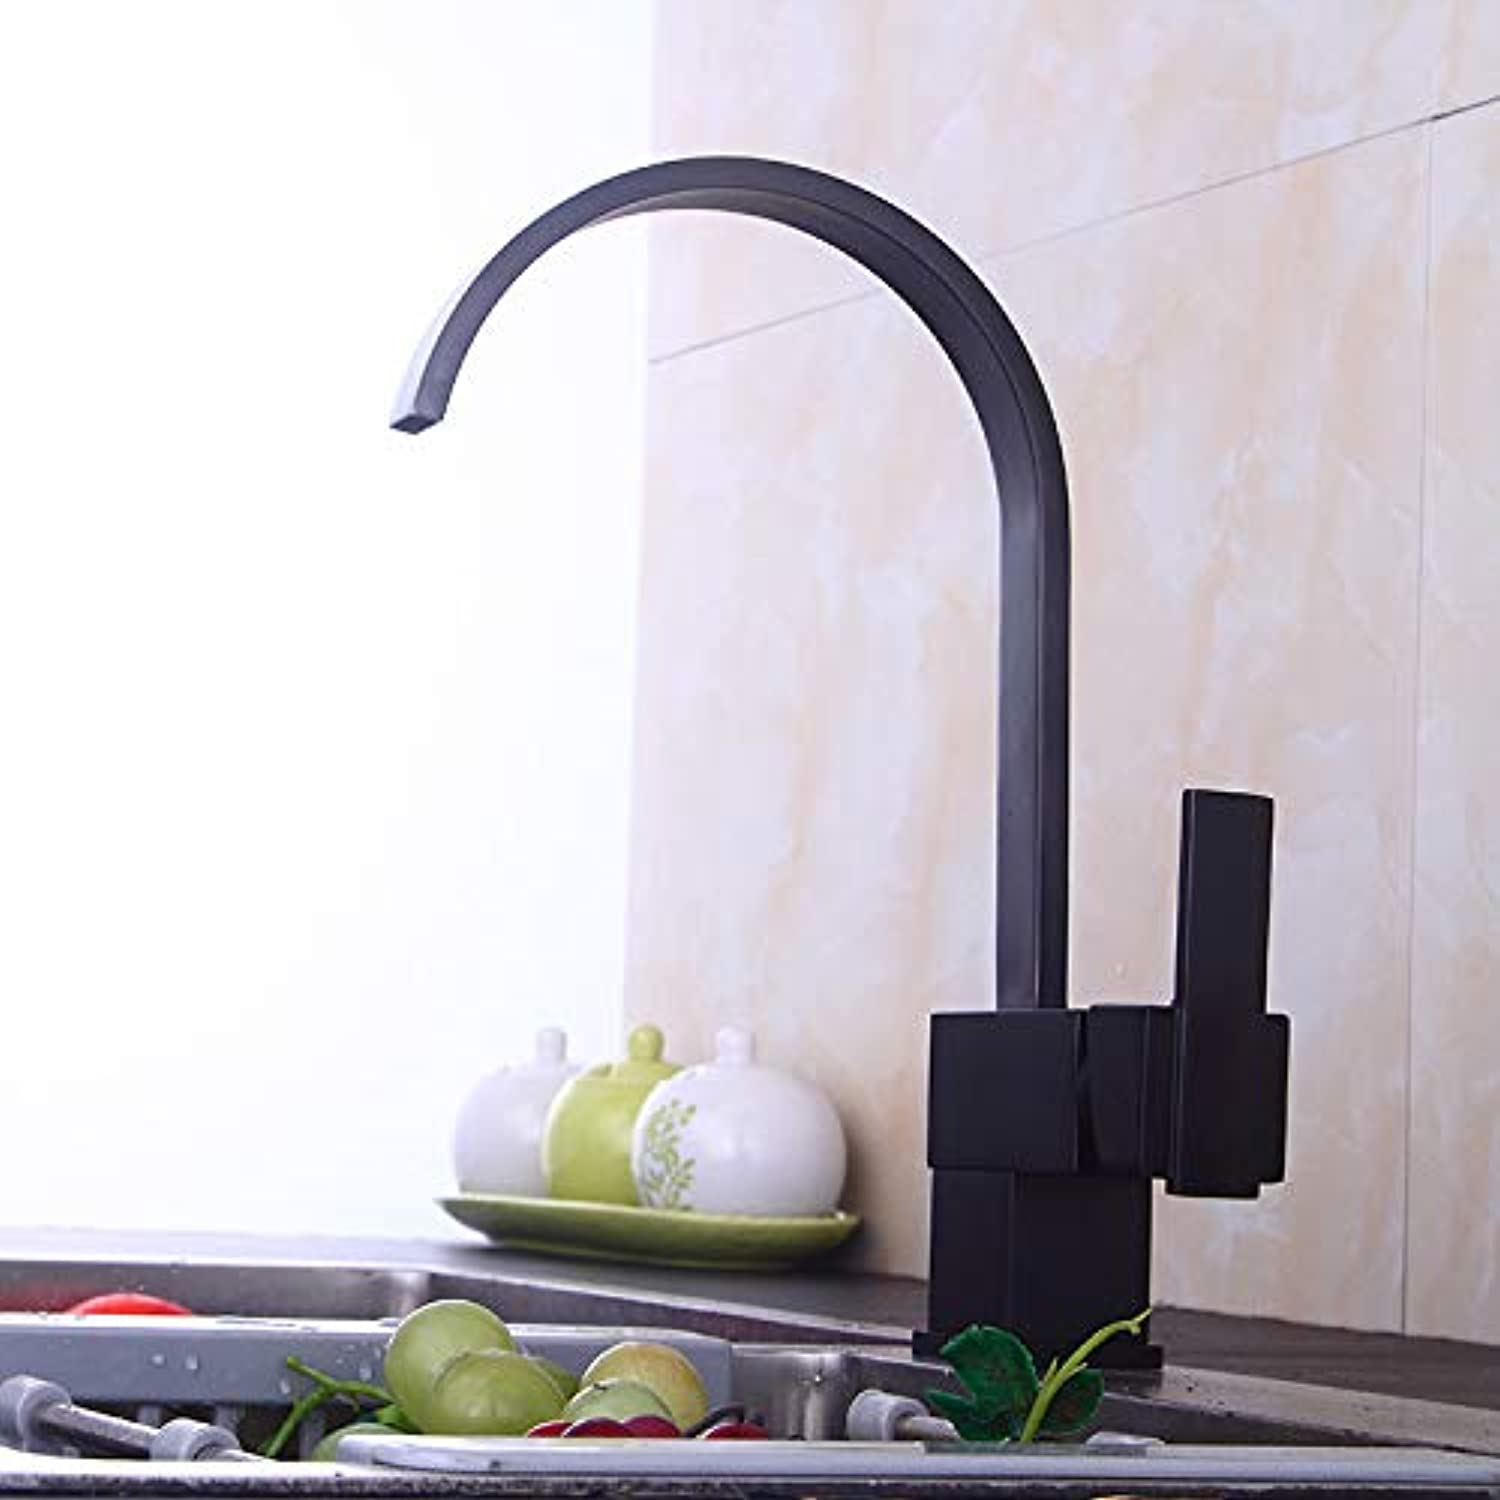 redOOY Taps Bathroom Sink Taps Shower Tapskitchen Faucet Black Ancient Kitchen Faucet Basin Faucet 360 Degree redating Faucet